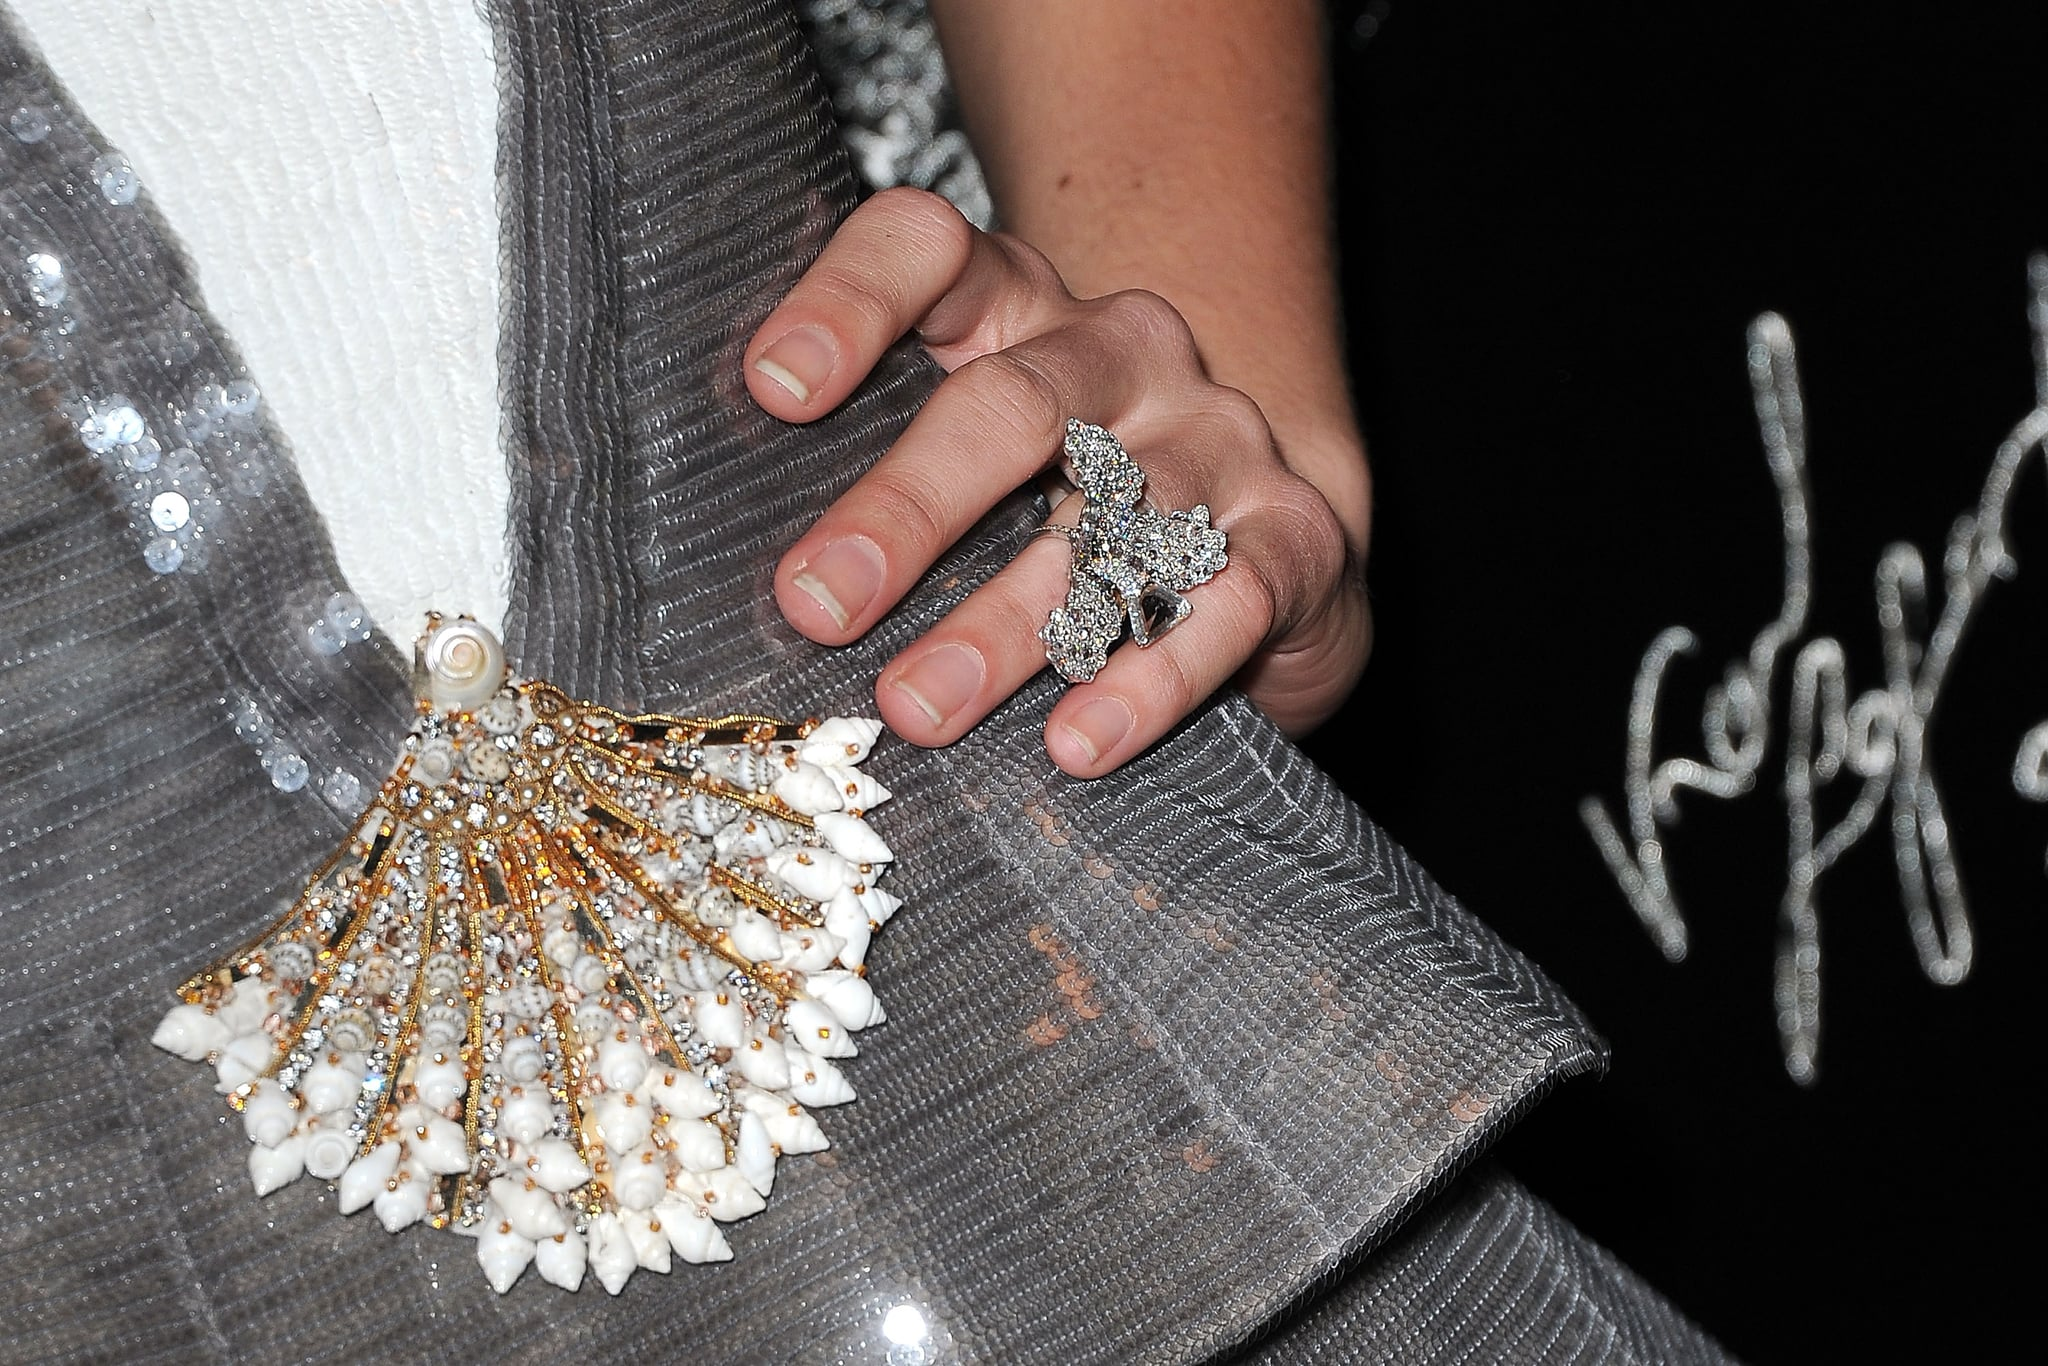 Check out Blake's gorgeous bling!